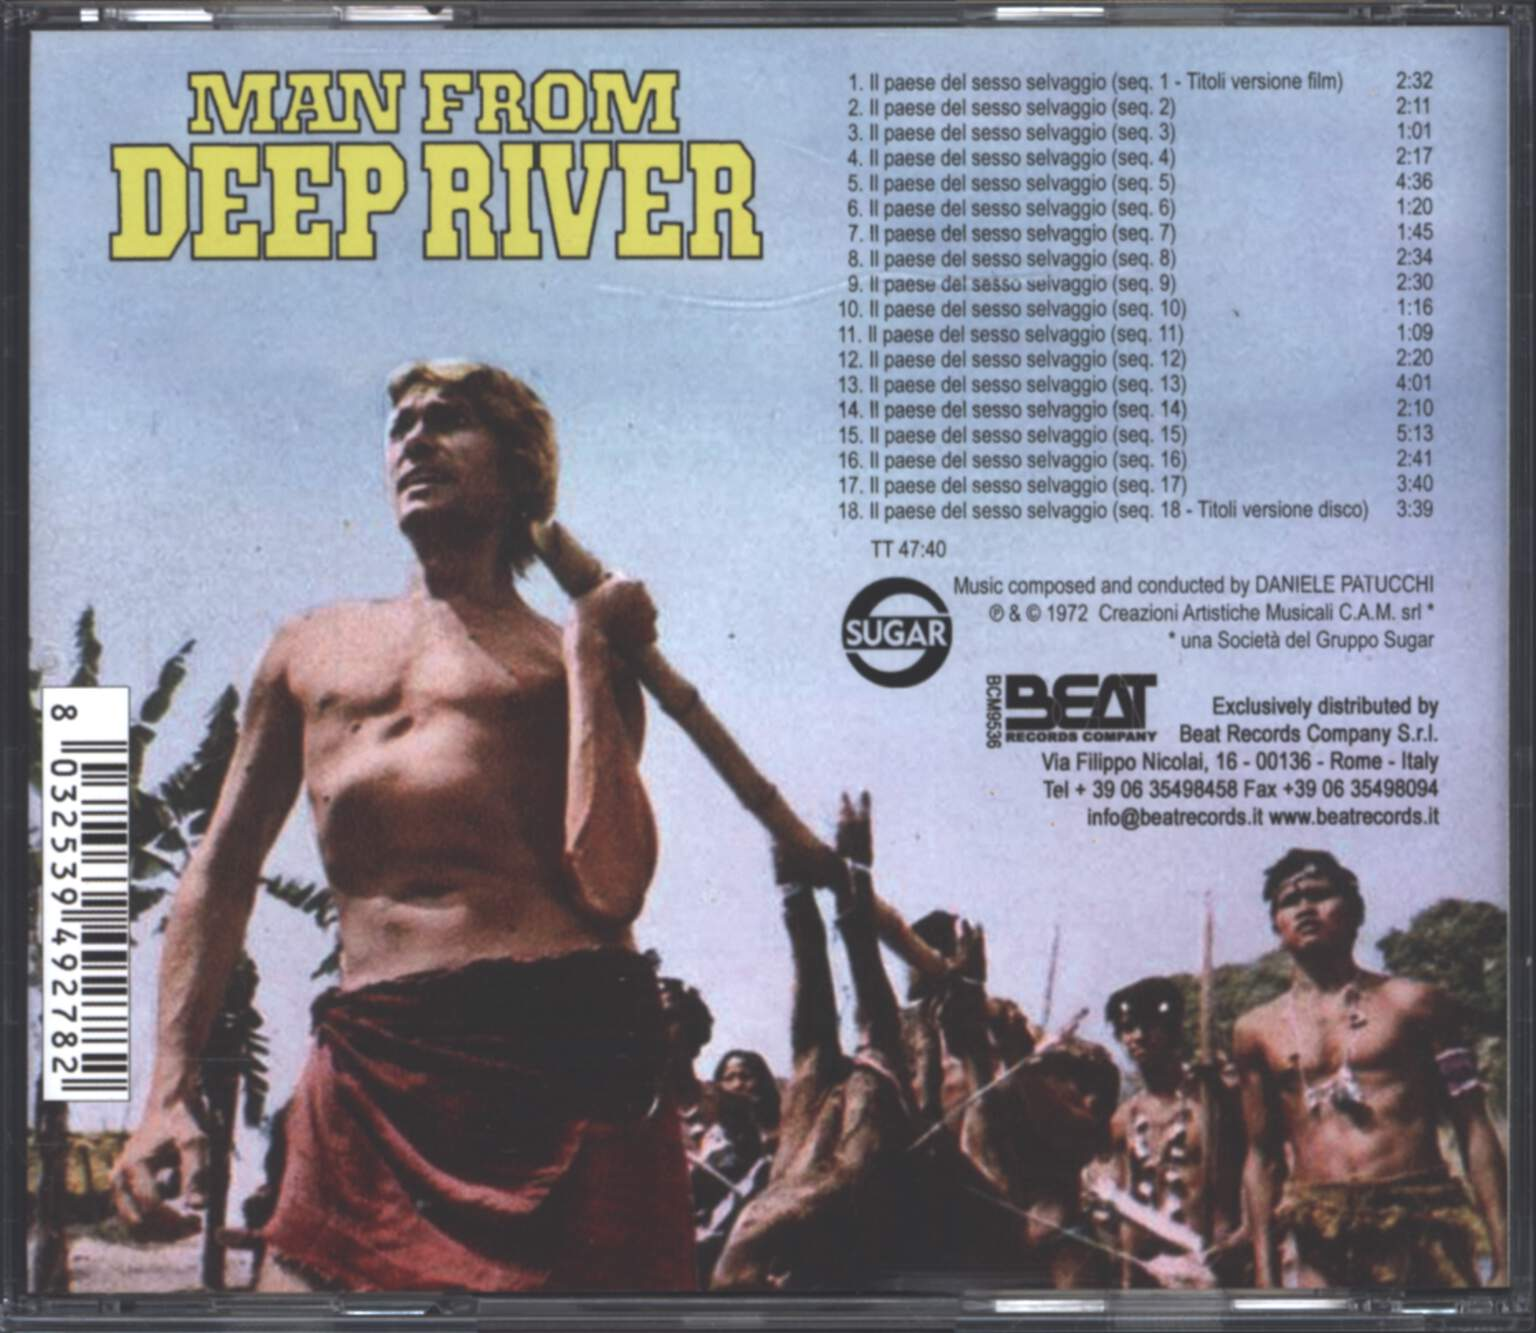 Daniele Patucchi: Man From Deep River (Original Motion Picture Soundtrack), CD